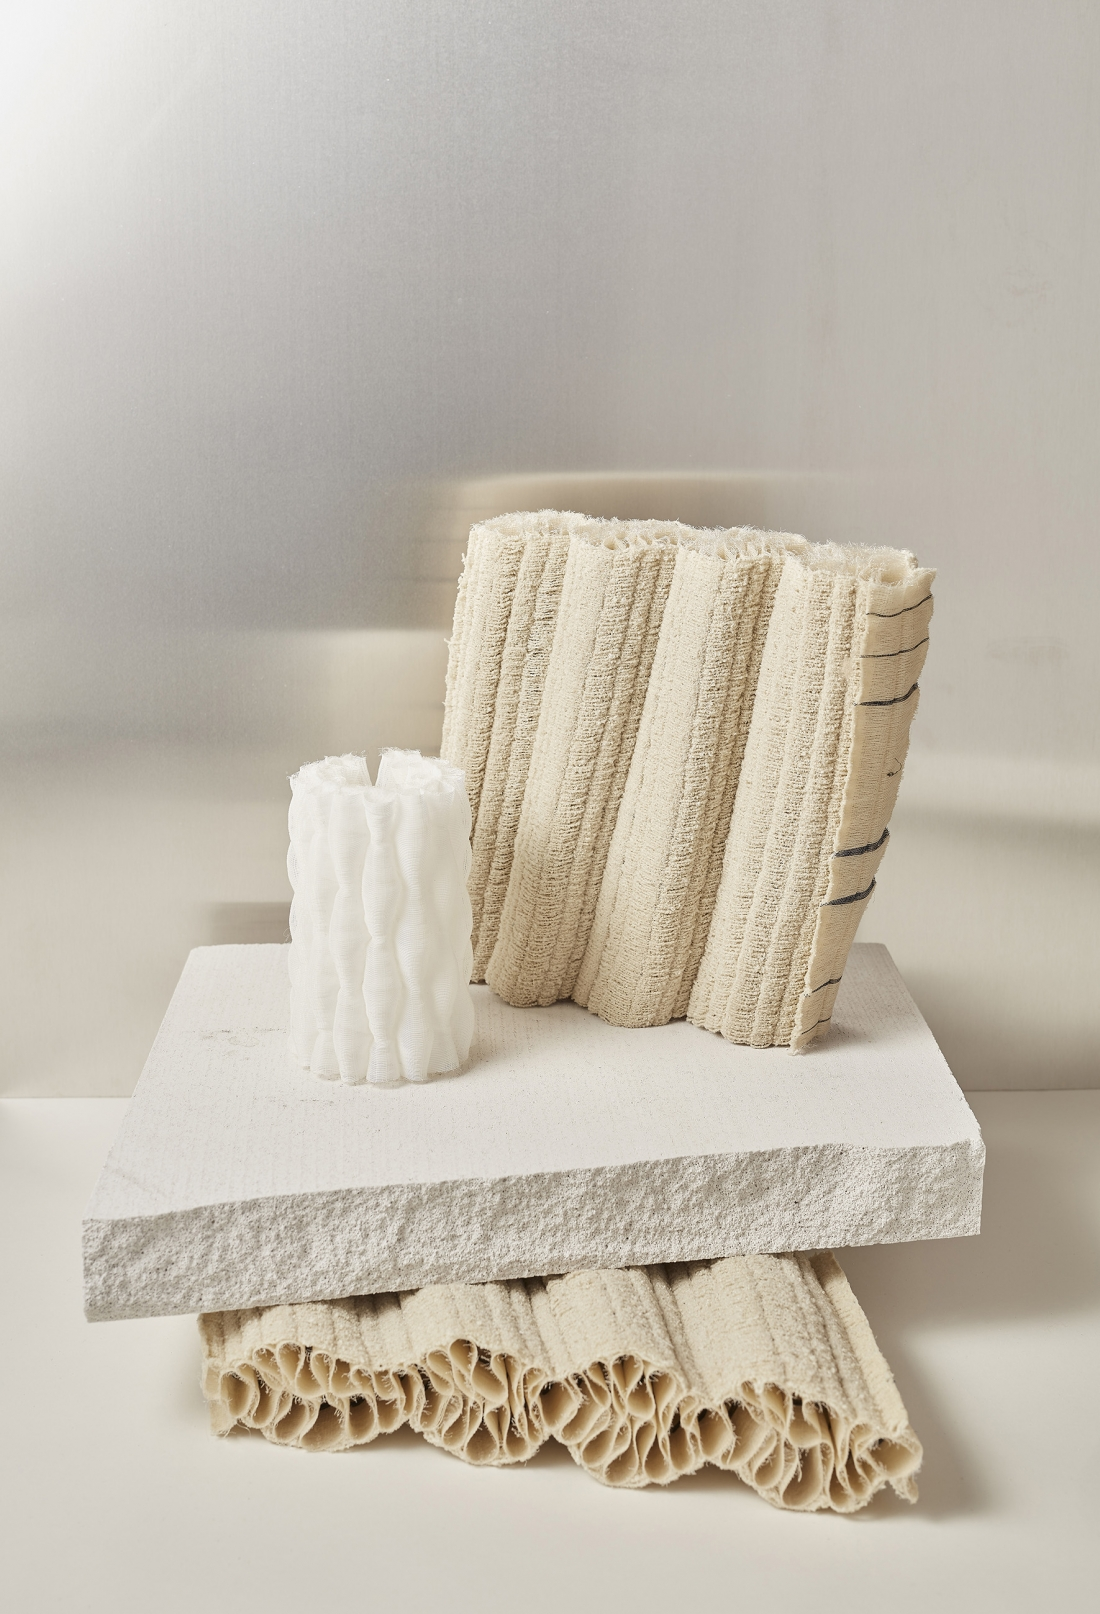 Reinforce: copyright: SPOTT for Heimtextil. Photo: Andreas Houmann